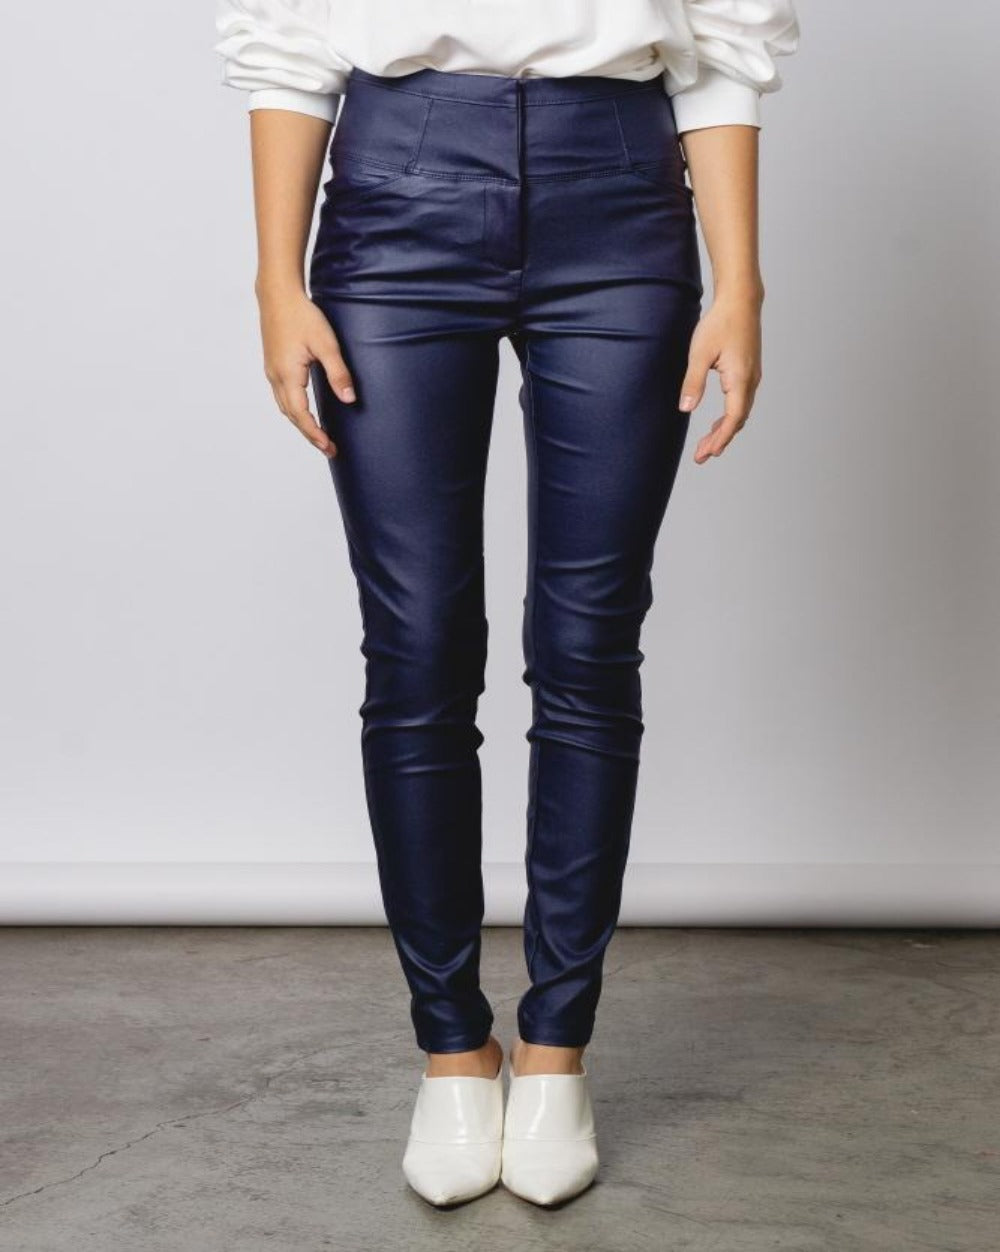 Rockstar Tings navy blue high waist faux leather pants